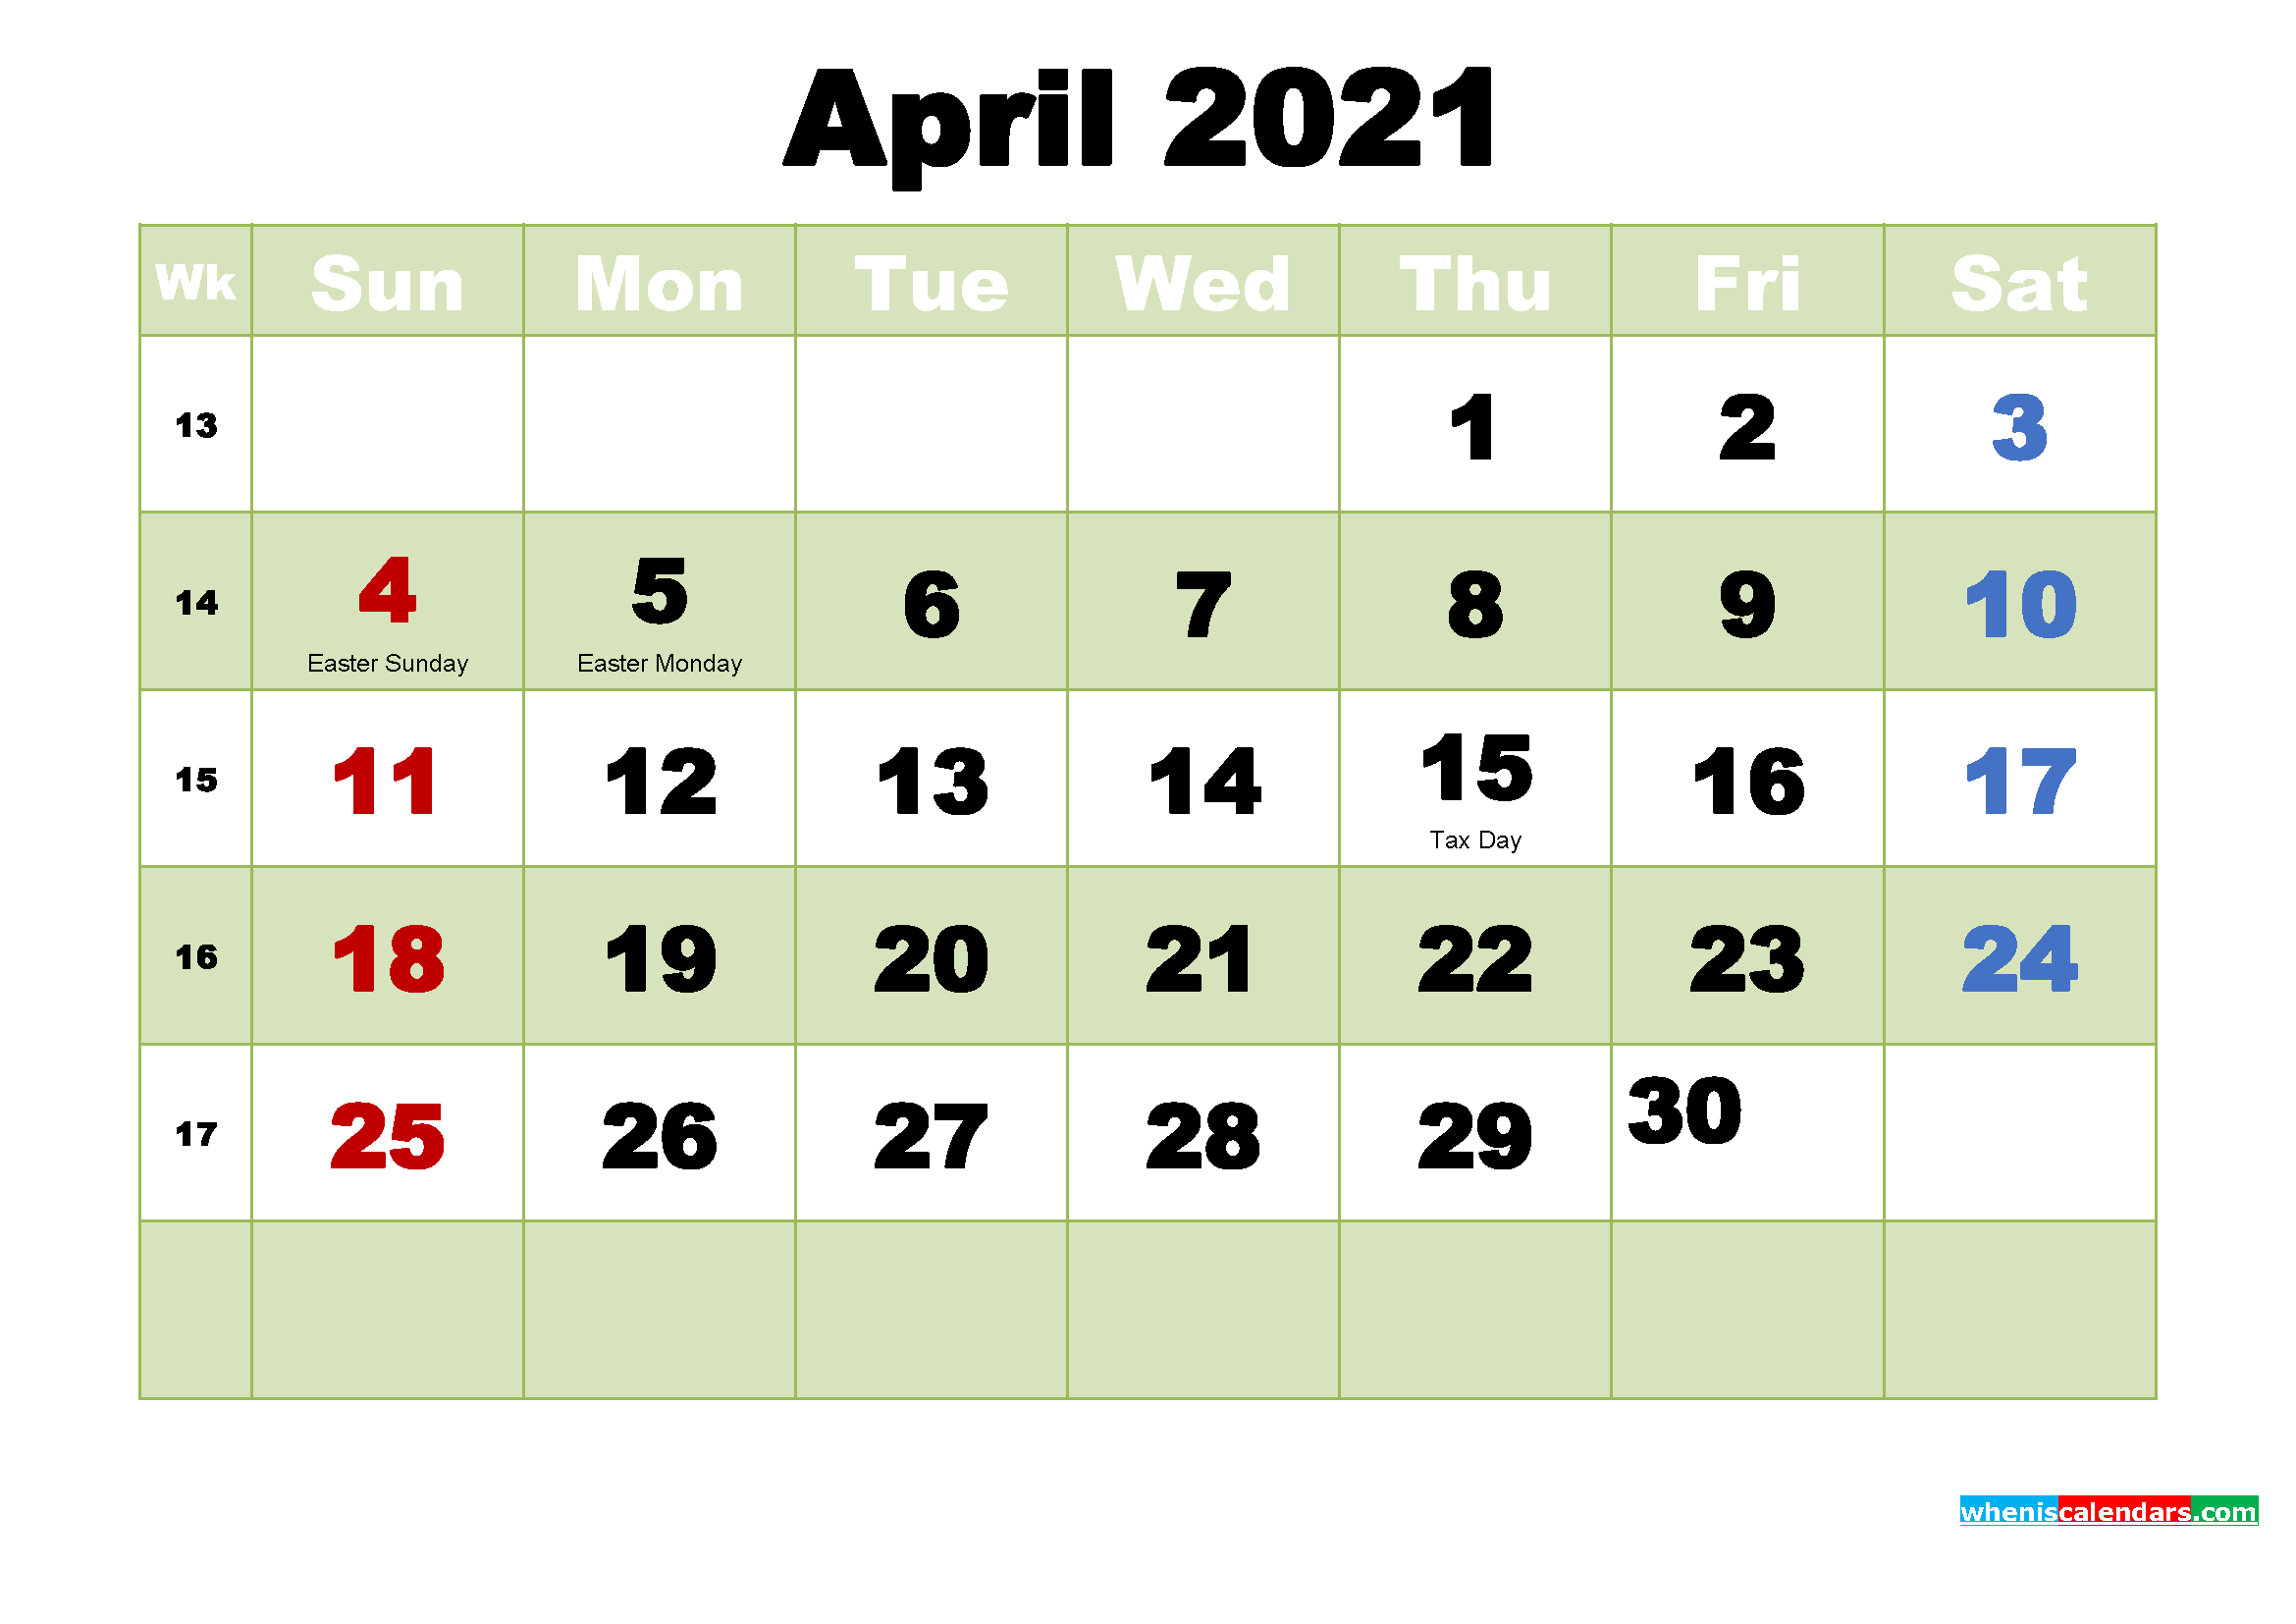 April 2021 Desktop Calendar Free Download